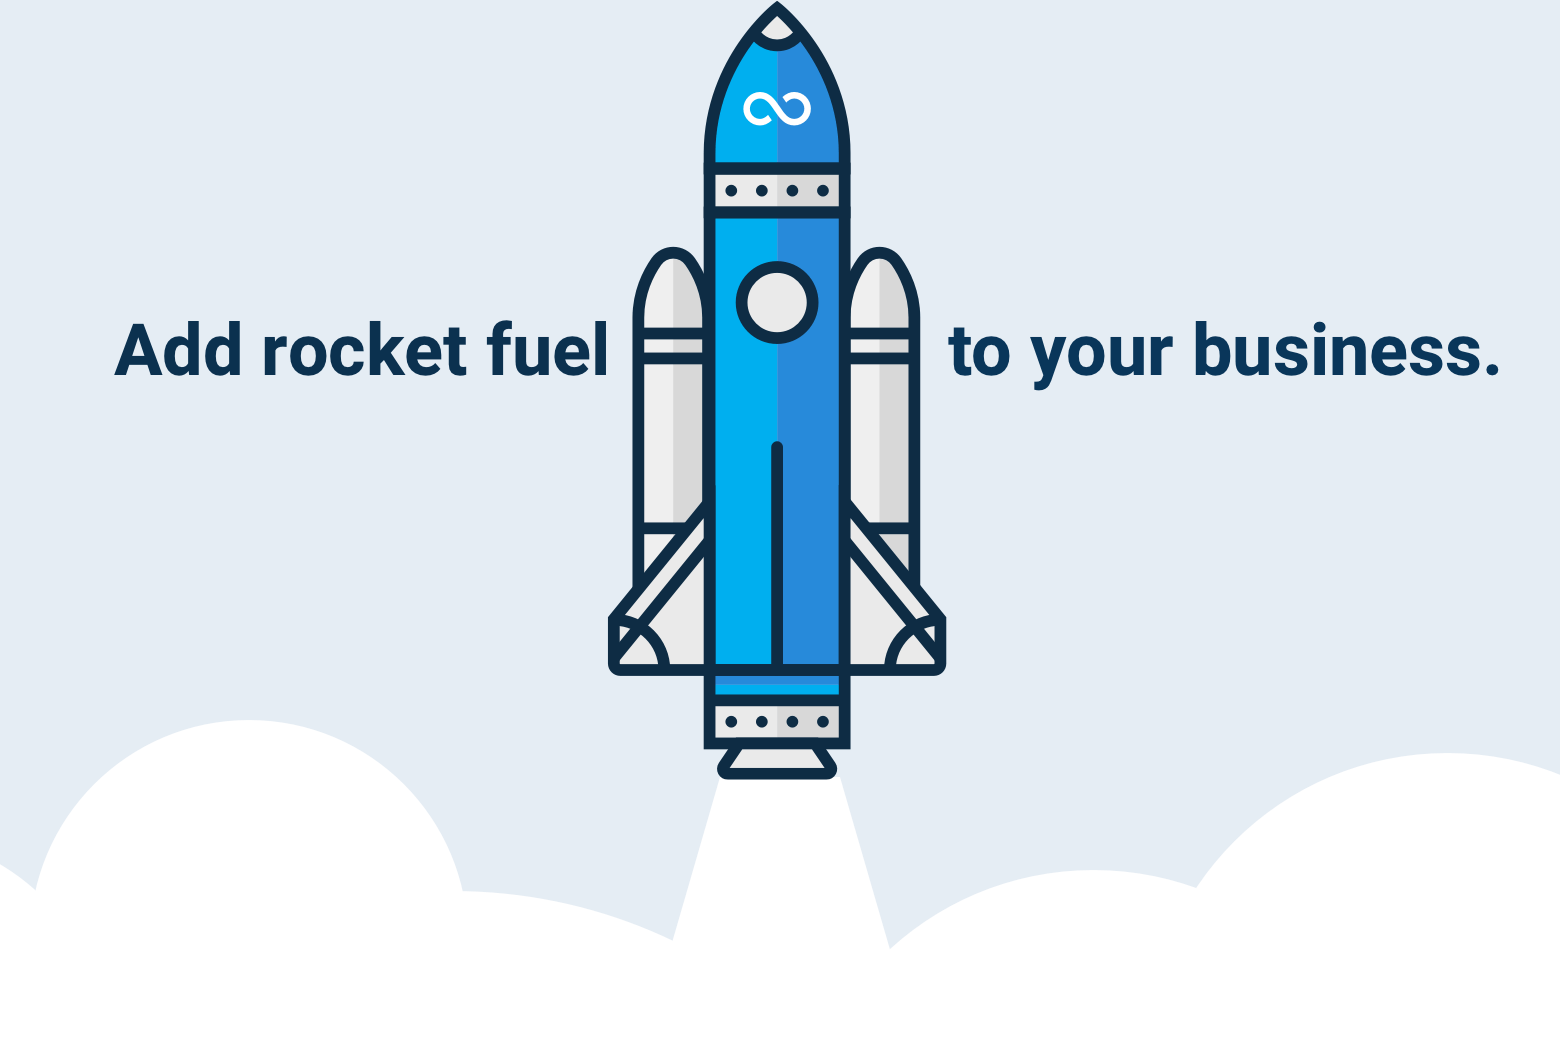 Add Rocket Fuel to Your Business